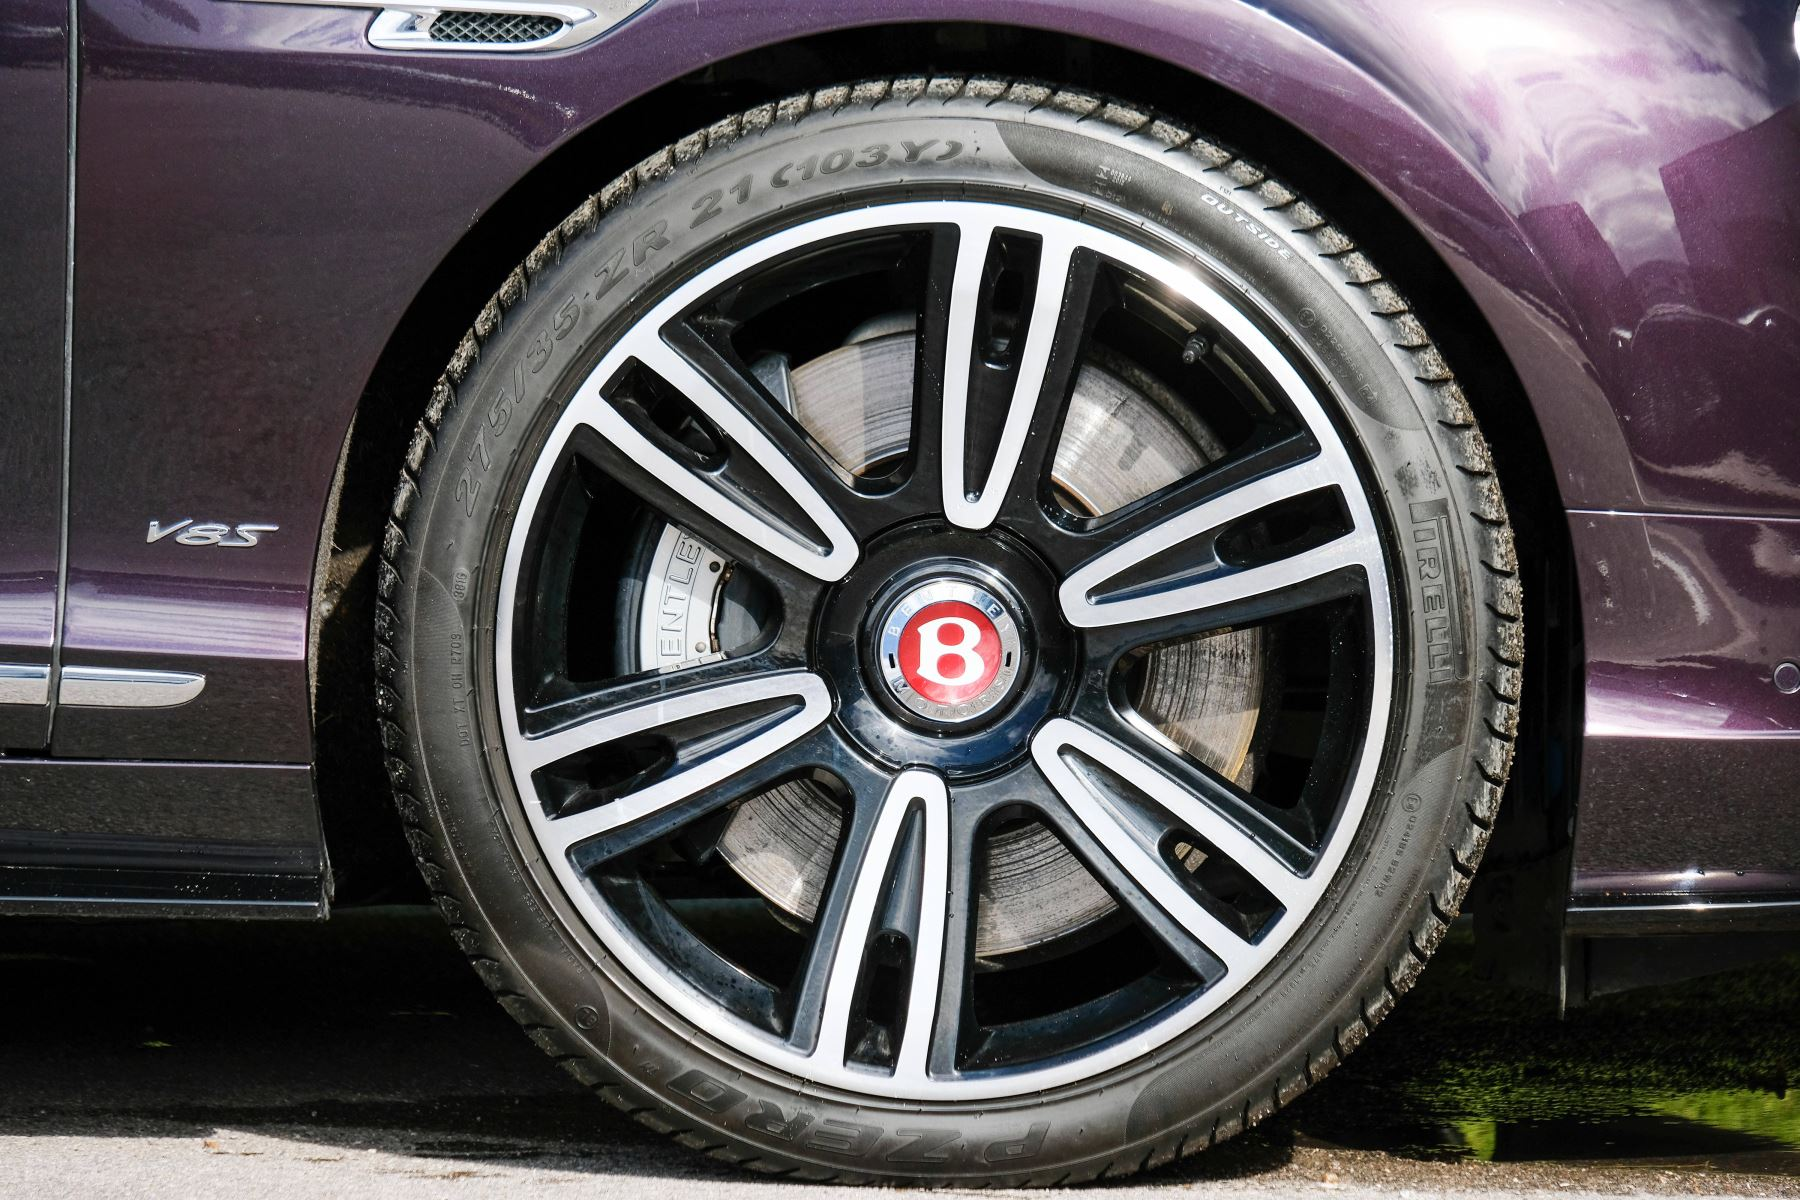 Bentley Continental GTC 4.0 V8 S Mulliner Driving Spec - Premier and All Seasons Specification image 8